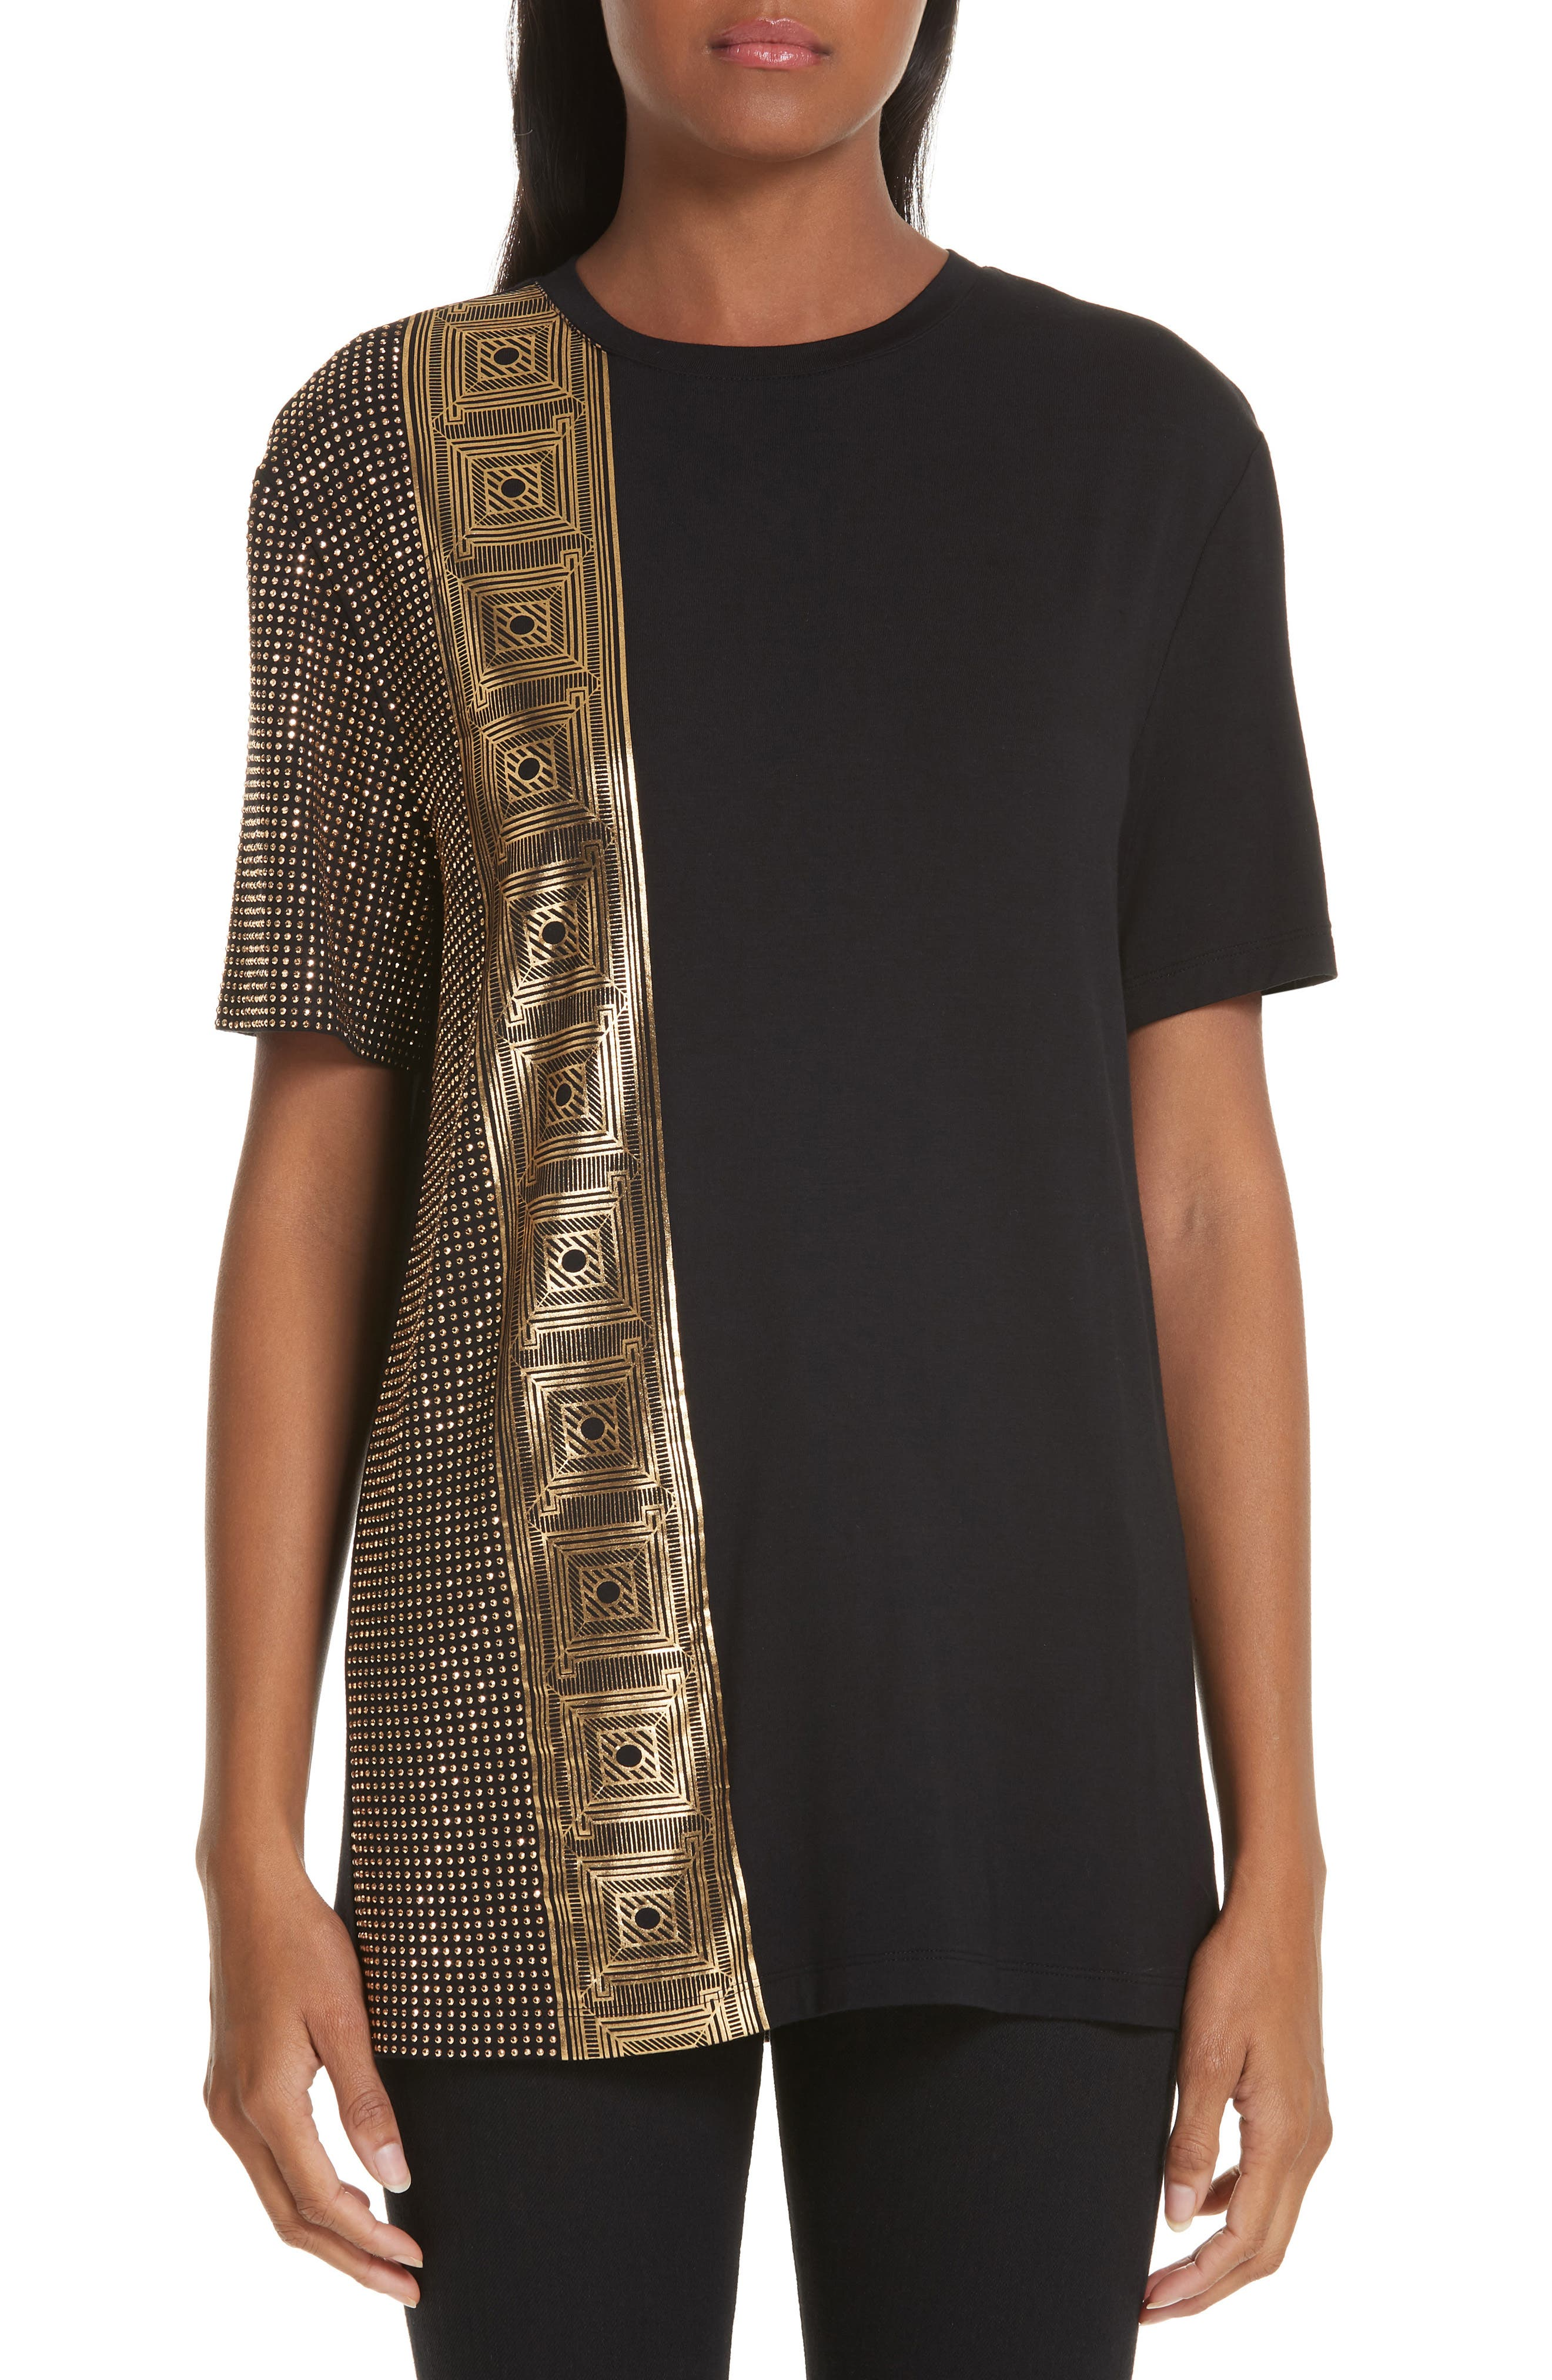 VERSACE COLLECTION Embellished Tee, Main, color, BLACK